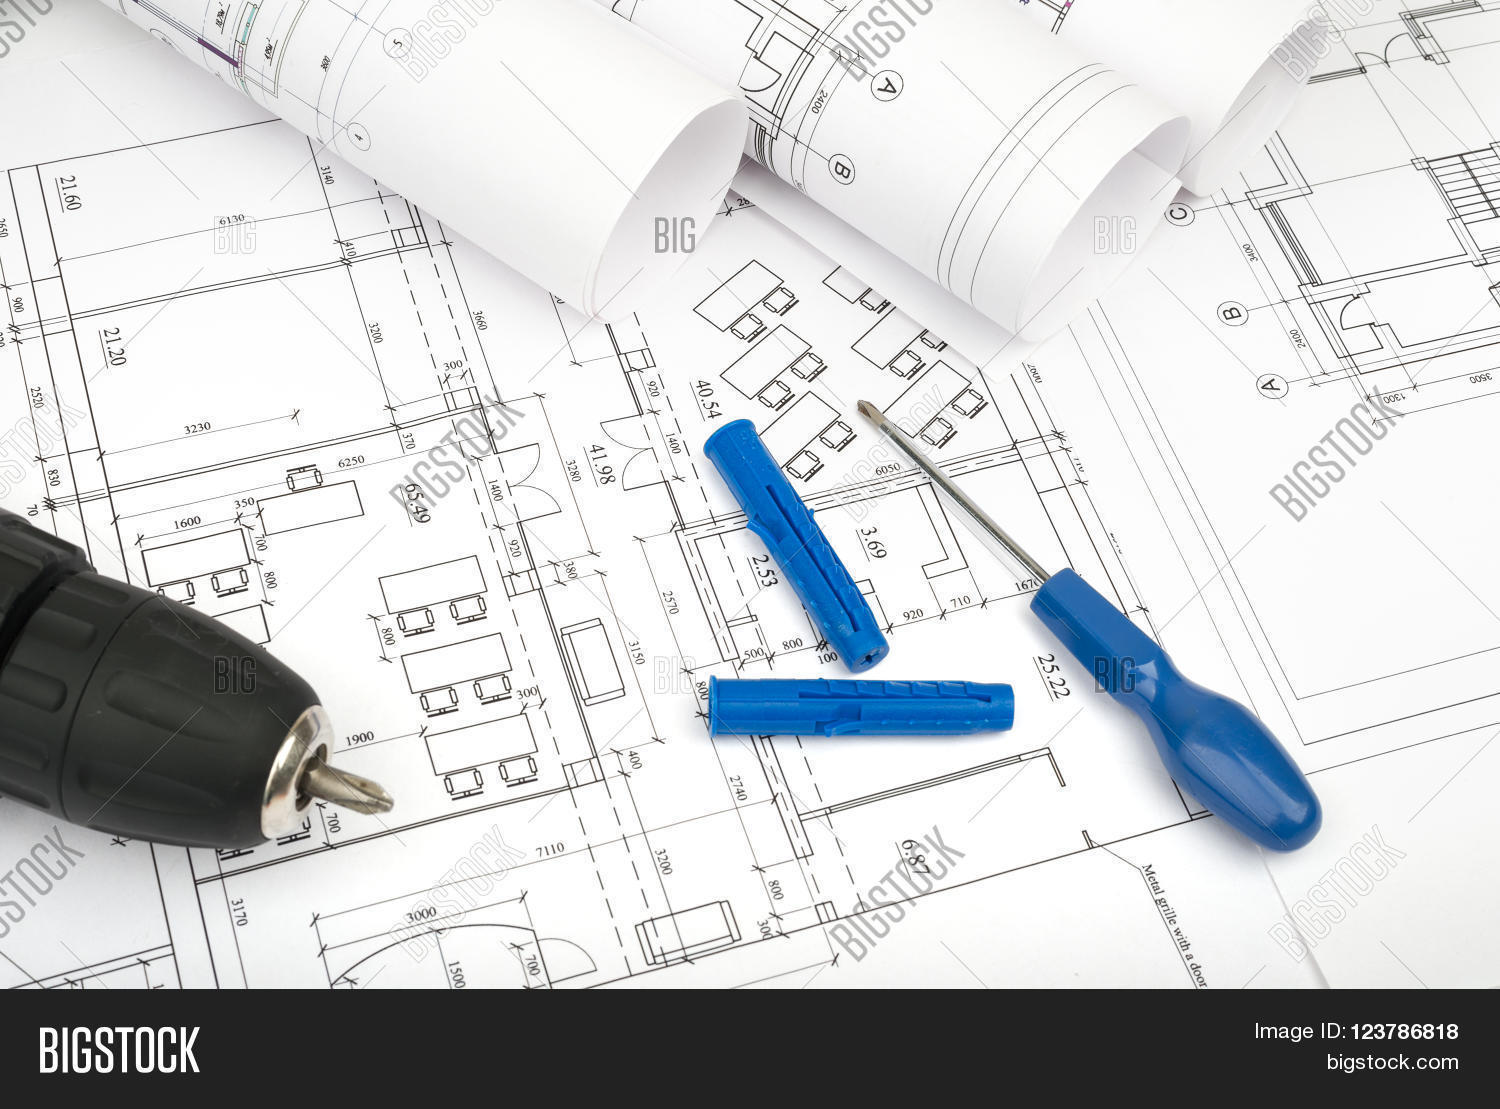 Architecture plan image photo free trial bigstock architecture plan and rolls of blueprints with scredriver and electric screwdriver building concept malvernweather Images